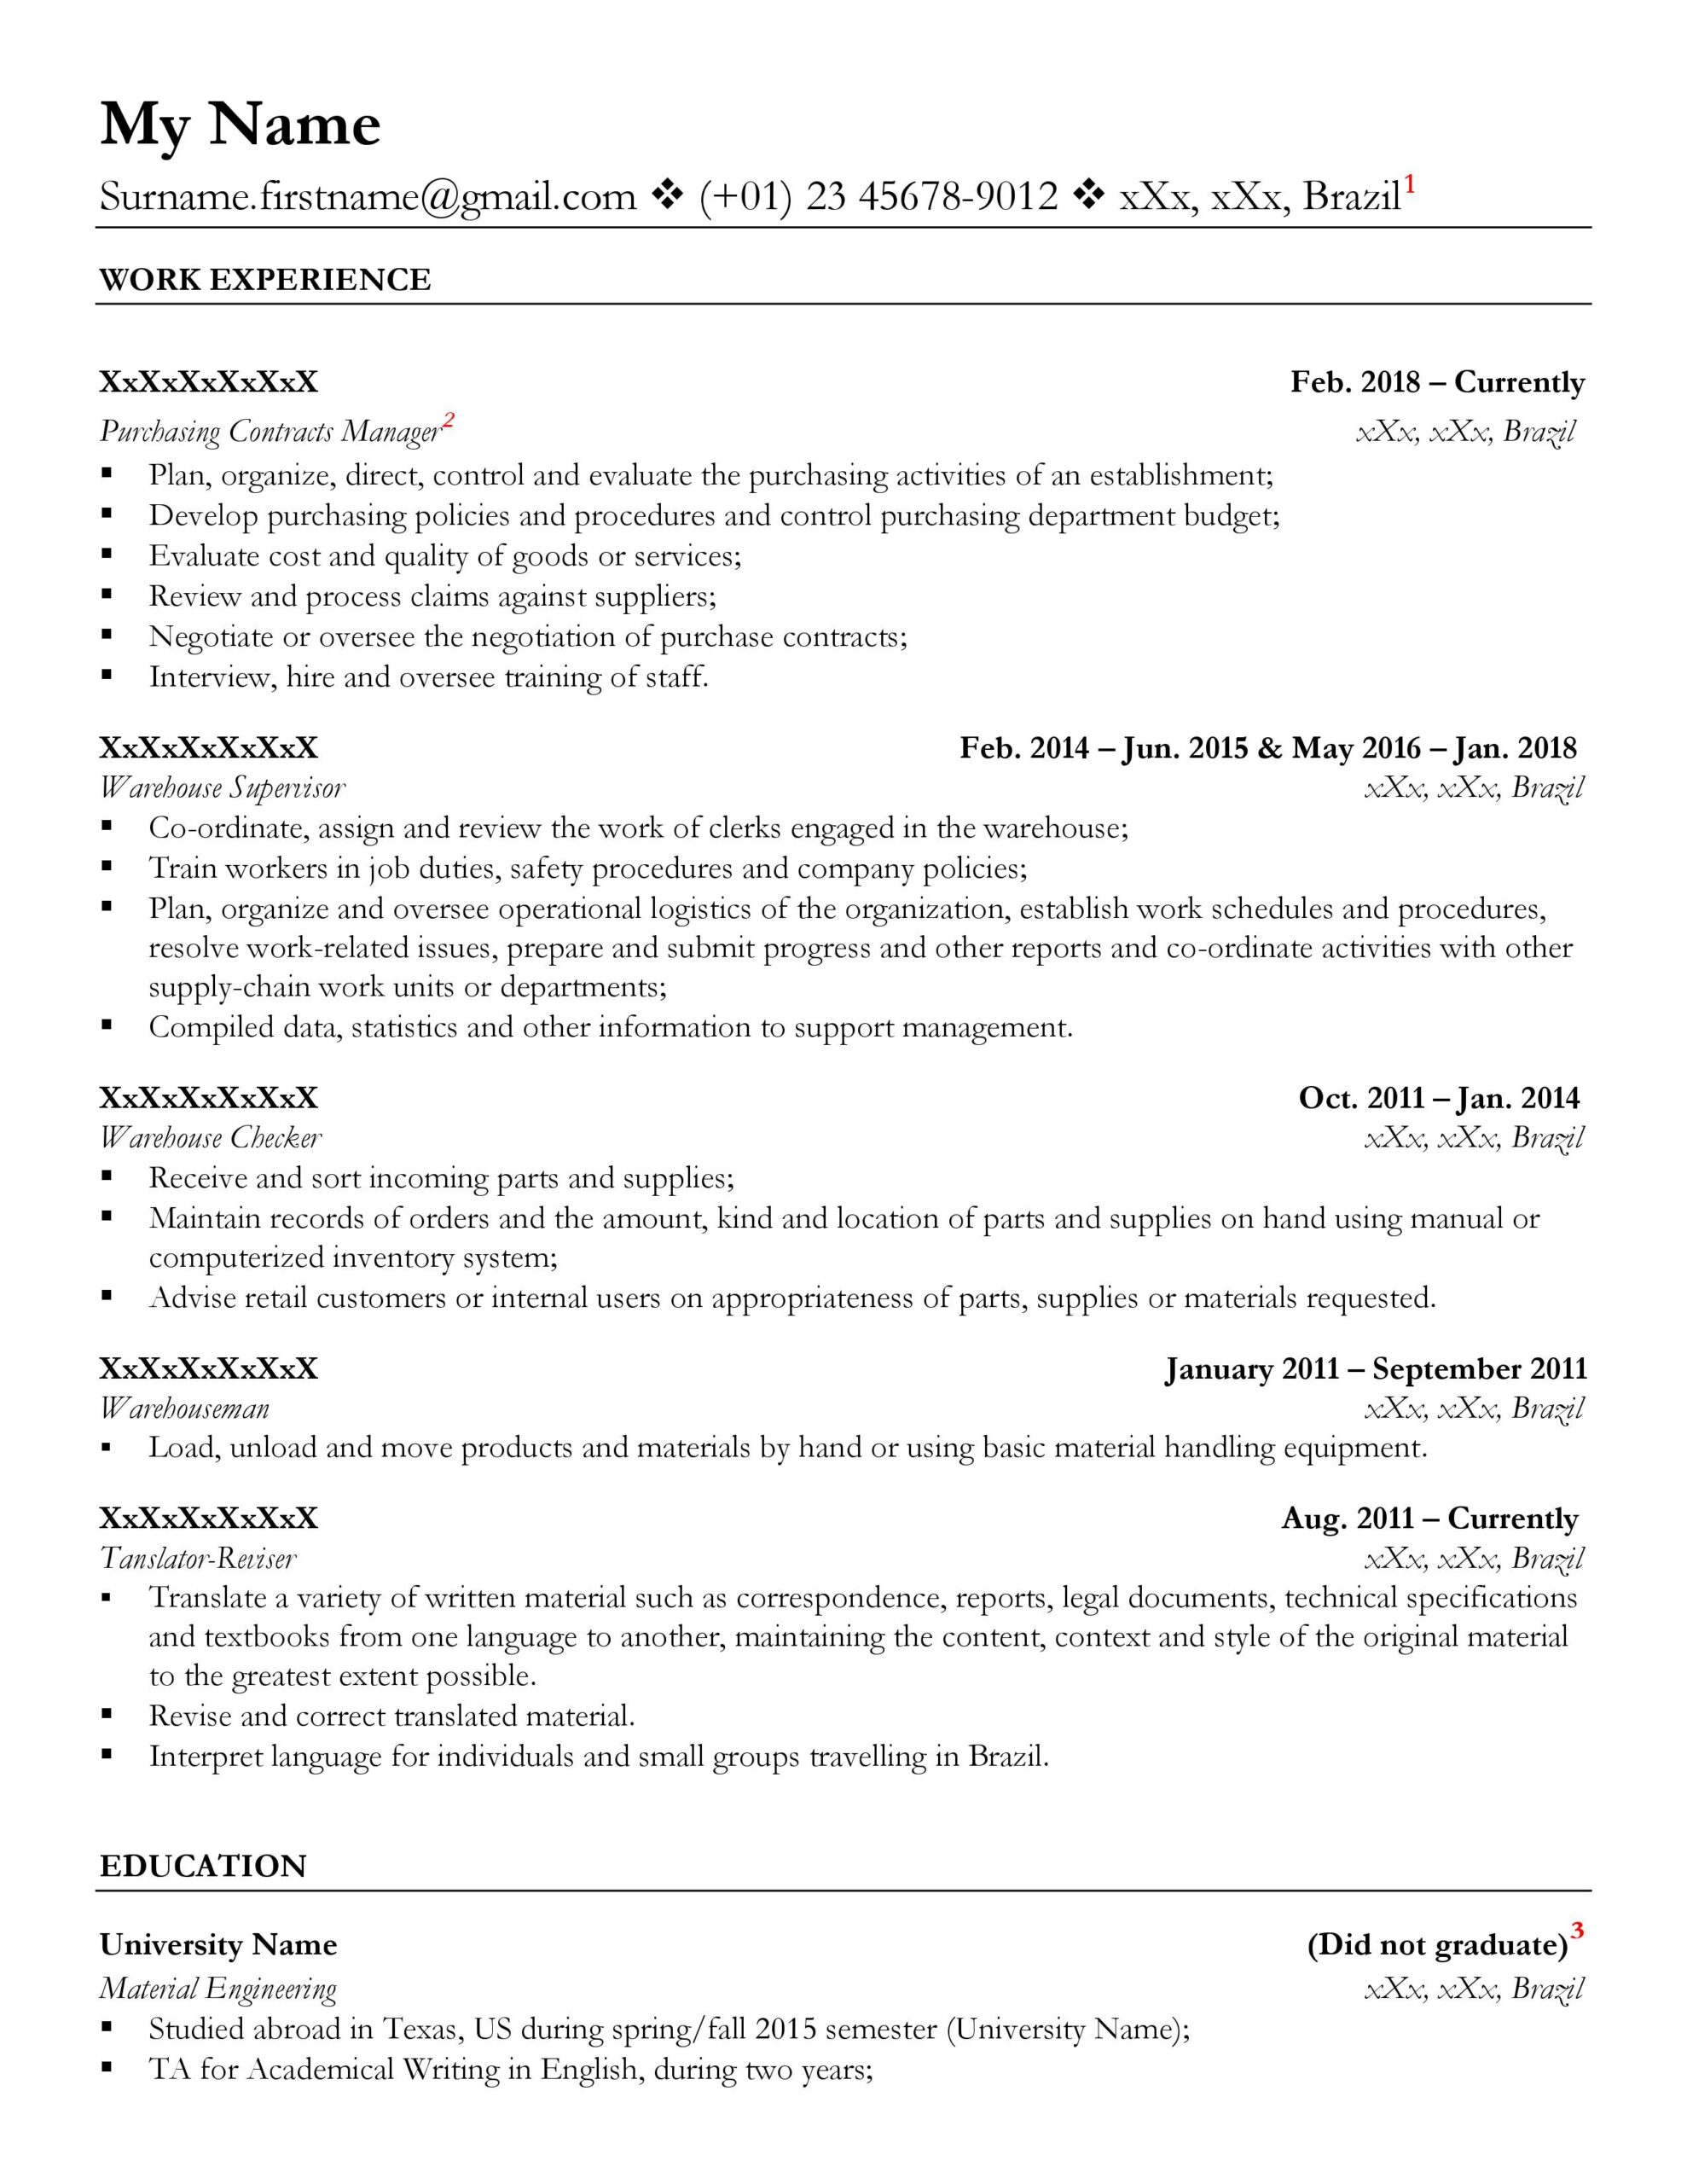 is my résumé good enough for resumes style resume format z09ux0lse4u11 teresa should Resume Canadian Style Resume Format